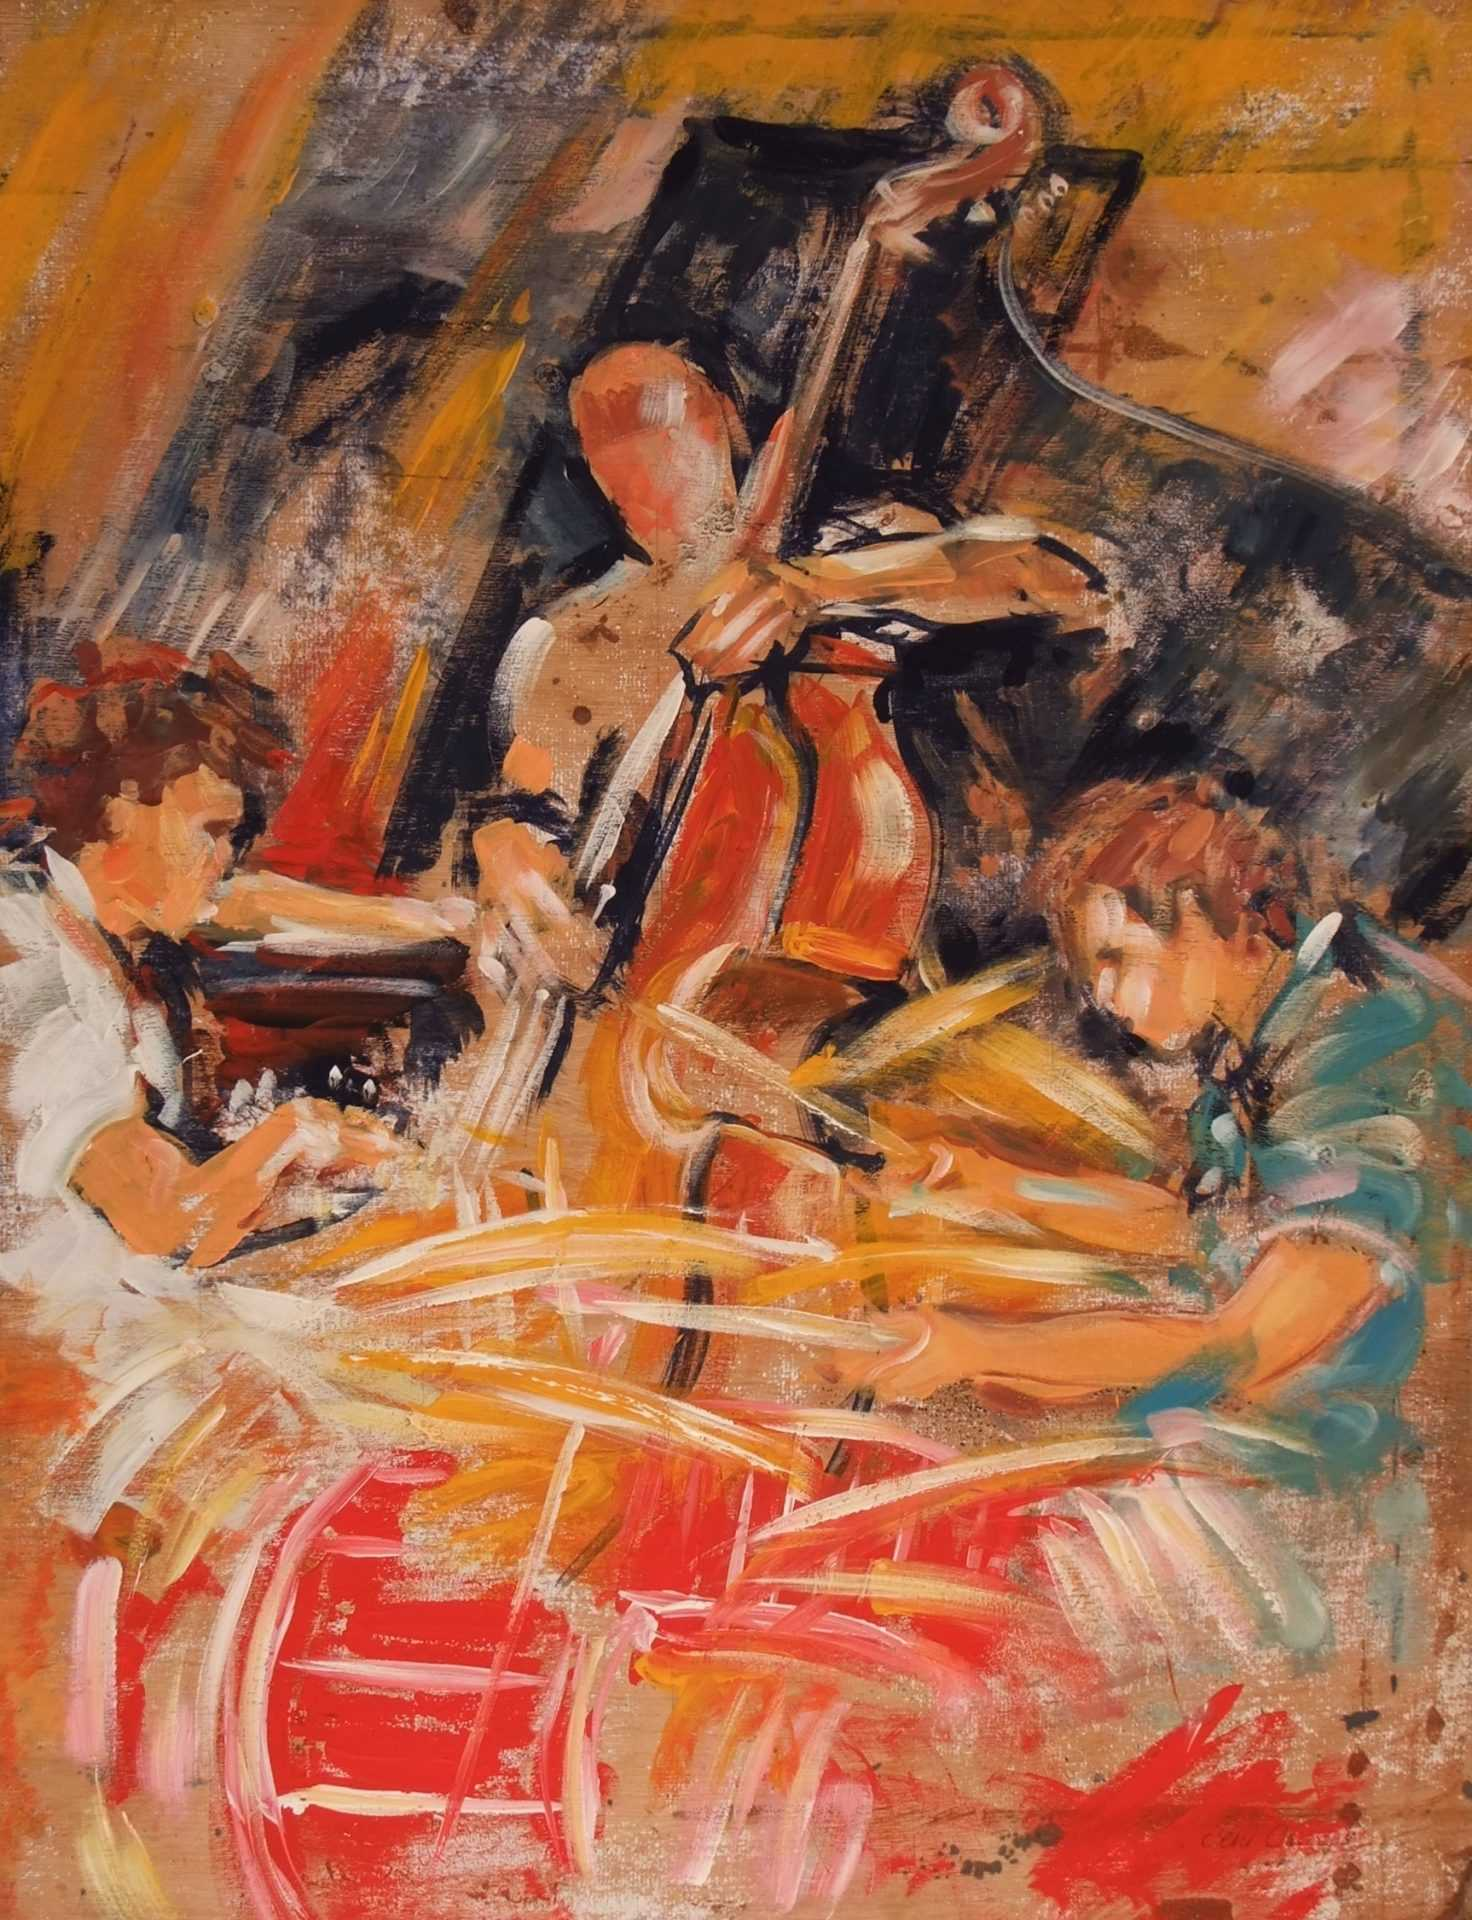 jeni-caruana-avishai-cohen-painted-live-at-the-malta-jazz-festival-2011